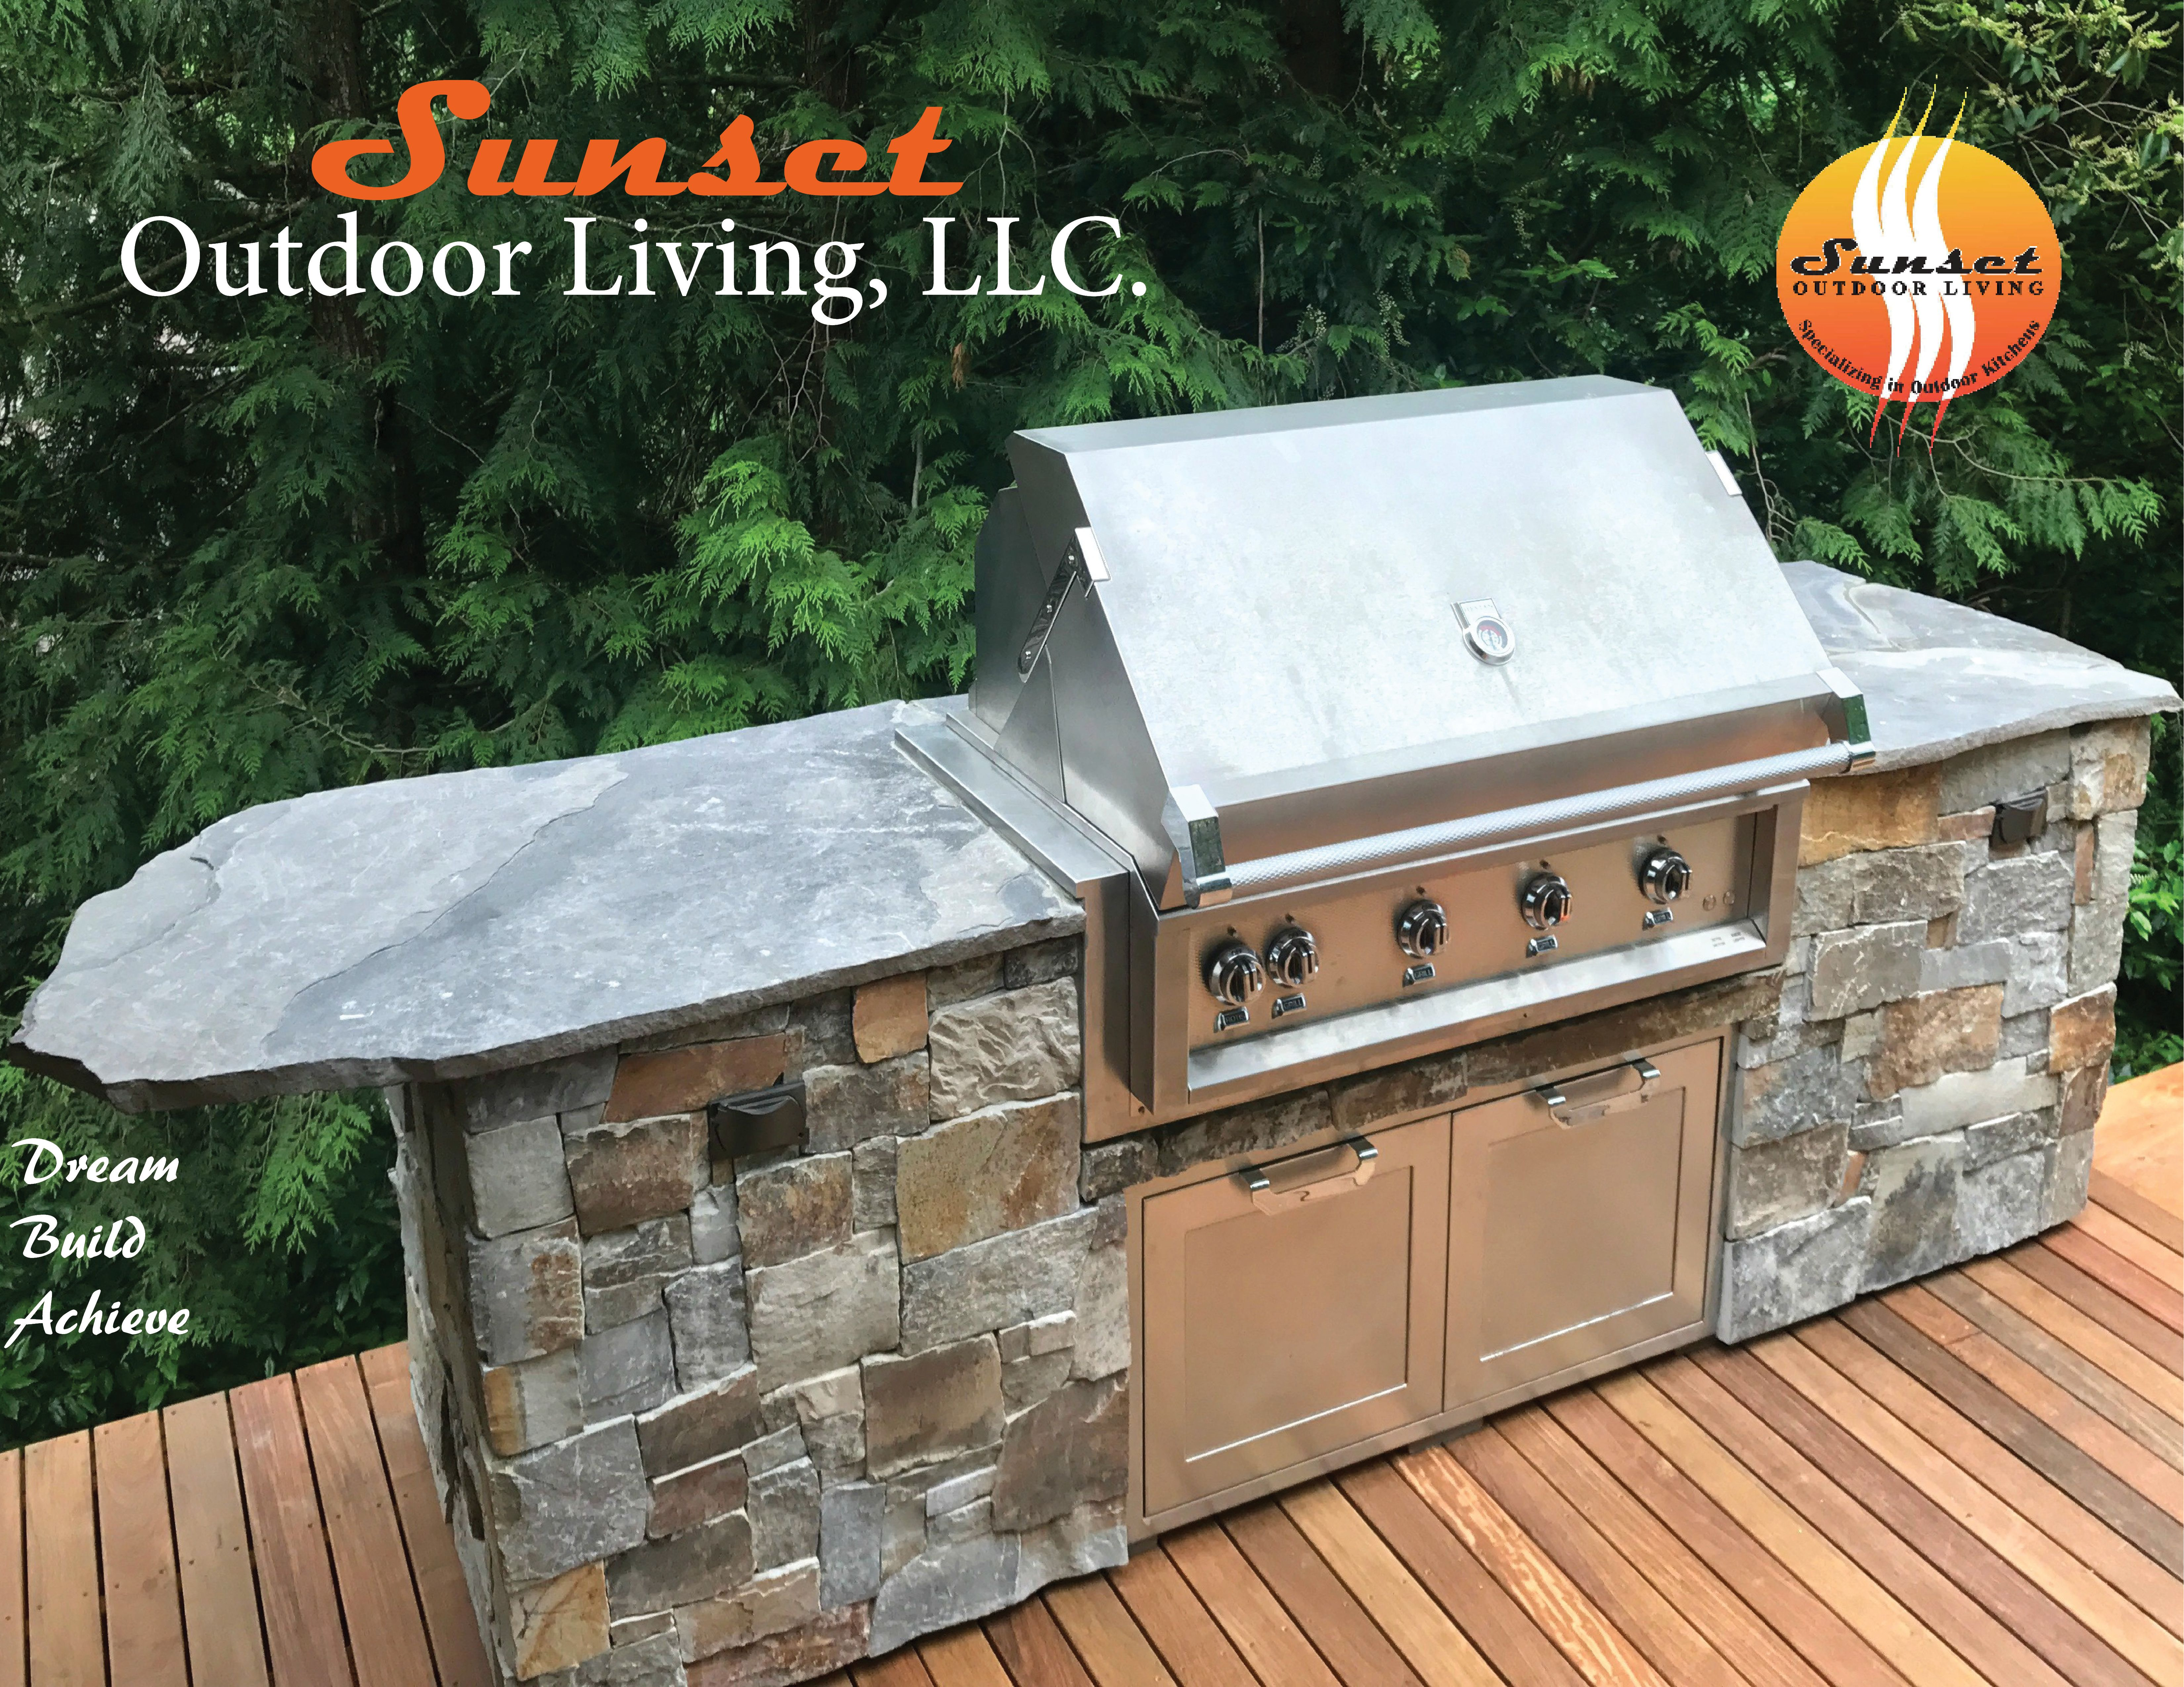 Outdoor Kitchen Designed Custom Created By Sunset Outdoor Living Llc Delivered Luxury Outdoor Kitchen Unique Kitchen Countertops Outdoor Kitchen Design